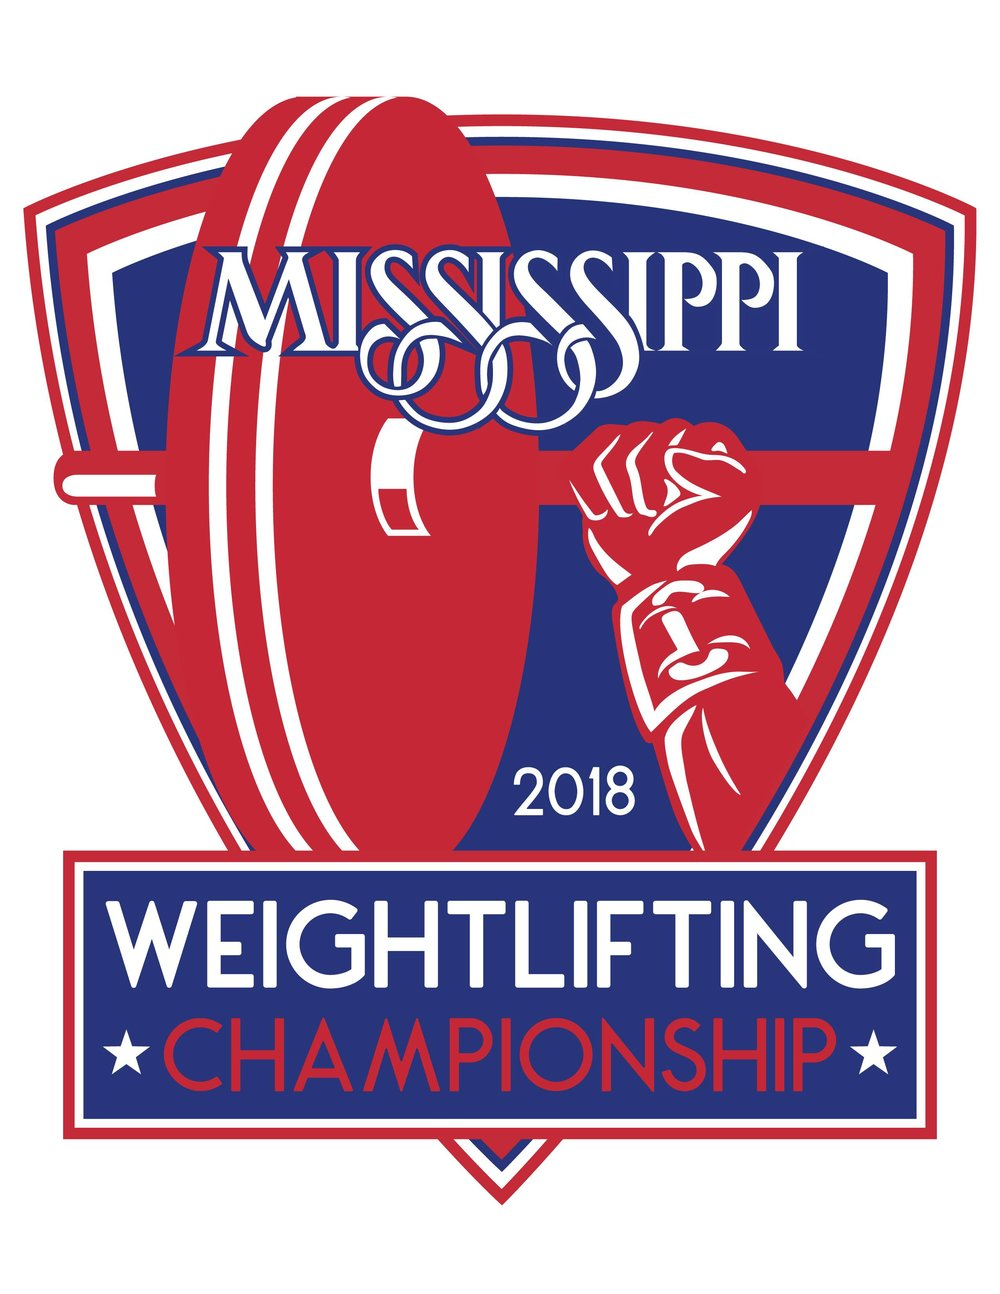 USA Weightlifting sanctioned meets in Mississippi turns 5 this year. In 2013 the first meet in state history was hosted by our club Mississippi Barbell. We have continued the annual State meet and have expanded meets throughout the state (meet directing every one of them).  Join us at Reservoir Crossfit (131 Builder's Square in Brandon, MS behind Miller's) on Saturday, June 2, 2018 for the 5th Annual State Meet.  As always, our events are open to all ages, state residencies, and abilities. This is a great event for first time athletes, those looking for more platform experience, or seasoned athletes looking for a qualifying total for a national event.  Divisions: Athletes may choose to register in a USAW or a non-USAW division.  Athletes electing to compete in a USAW division MUST have a current USAW membership. Memberships can be purchased at  https://webpoint.usaweightlifting.org/  Memberships will not be sold at the meet and therefore must be purchased prior to competition.  Athletes electing to compete in the non-USAW division will lift alongside USAW competitors, but will NOT have their results submitted to USAW for regional or national event qualification.  Lifts Tested: This Olympic weightlifting and USA Weightlifting sanctioned event consists of three attempts at the snatch and three attempts at the clean and jerk.  Weight Classes: All weight classes are in kilos. The following tables are based on USA Weightlifting's official conversion chart ( https://www.teamusa.org/USA-Weightlifting/Weightlifting101/Weight-Classes ).  Our registration form is based on and uses the information from this chart. Registering for the correct weight class falls on your shoulders, but if you have questions that aren't answered by the chart, please ask us.  Awards: The following awards will be given:  · 1st-3rd in Non-USAW division (based on Sinclair formula)  · 1st-3rd in USAW Youth division (age and weight class)  · 1st-3rd in USAW Masters division (age and weight class. Example: 35 year old female in the 63 kilo class would place as a 35-39 year old 63 kilo athlete)  · 1st-3rd in USAW Junior division (age and weight class)  · 1st-3rd in USAW Open division (weight class)  · Best Overall Lifter (Youth, Junior, Master, Open. Male and female for all)   Attire: Singlets are suggested but not required for any division. If not wearing a singlet please ensure we can see the creases in your elbow or knee for judging purposes. Exposed midriffs or singlet straps not worn over the shoulders are not allowed pursuant to USA Weightlifting rules. Example: A short sleeve shirt and spandex tights or loose shorts above the knee are acceptable non-singlet attire. This is not an exhaustive list of what can be worn. This is only one example.  Registration Limit: Registration is capped at the first 30 lifters to register and pay. The pricing tier listed below does not guarantee spots will remain open at those dates.  Pricing:  Early Bird- $55 – through April 16, 2018  Price Saver- $70 – April 17 through May 14, 2018  Late Registrant- $85 – May 15 through May 31, 2018  Start List: Preliminary start list will be made available via Facebook event page and email to registrants on May 28, 2018. It will be subject to change dependent on late registrants. NOTE: Typically, all females lift first with weigh ins at 7 am and lifting at 9.  Weigh-Ins: Weigh-ins are only on the day of the event. They begin two hours before your start time and only last one hour.  For example, if you lift at 9am, your weigh-in time is from 7-8am. If you do not weigh in by 8:01am, you will have missed your weigh-in window.  If you fail to make your weigh-in on time, you will still lift in the competition, but your results will not be submitted to USAW (even if you signed up for the USAW division). You will compete in the non-USAW division for a potential medal.  The weight class you pick at registration will strictly be enforced. You can change your weight class but must do so by May 14, 2018 to ensure a medal will be ordered for you. Any changes to your weight class after May 15 will be not guarantee you a medal. Please remember we are a nonprofit and funds are carefully allocated to ensure a finite amount of medals. We utilize local businesses to create our specialized medals for this State event and they need two weeks to prepare them (at least). This is why there is a time frame.  Should you fail to change your weight class or make weight for the weight class your registered as, then you will STILL BE ABLE TO LIFT. If USAW division your results will still be sent to USAW. You will still lift in the same session as the division YOU ORIGINALLY REGISTERED FOR unless otherwise noted.  Spectator Tickets: Spectator tickets are $5. They can be purchased at the door on the day of the event (cash or check made payable to Mississippi Barbell Inc only).  Only registered athletes and one coach of record are allowed in without payment (coaches if you have multiple athletes and need assistant coaches please email us before the event). We have very limited space and want everyone to have equal access and opportunities in the warm up area.  Volunteers do not have to procure a ticket. A list of all names will be kept at the entrance. Please do not disrespect our volunteers if they ask you for registration or for you to show your ticket---they are doing their jobs.  Volunteer Opportunities: If you'd like to volunteer to help at the event (bar loading, table working, front door, refereeing) please email us at msweightliftingclub@gmail.com. We always need more referees and the test is free. More information can be found at  http://www.teamusa.org/USA-Weightlifting/Referees/Referee-Clinic-Video . All volunteers working the tables, conducting weigh-ins, or refereeing MUST be USAW members (cheaper rates apply via USAW if you are not registering as an athlete--see previous link in Membership portion).  Consumption of alcohol at the event site during the event (which includes weigh ins through awards) is strictly prohibited pursuant to USAW rules. It will result in your immediate disqualification even if you have already lifted. Your results will NOT be sent to USAW.  *** All sales are final. There will be no refunds awarded for any reason (including missing weigh ins or injury). Meet registration cannot be transferred to another individual. ***  *** By registering for this event, you are acknowledging you have read this page in its entirety along with USAW rules, regulations, and by laws, understand what it says, and agree to abide by that which is stated**  Direct emails to msweightliftingclub@gmail.com